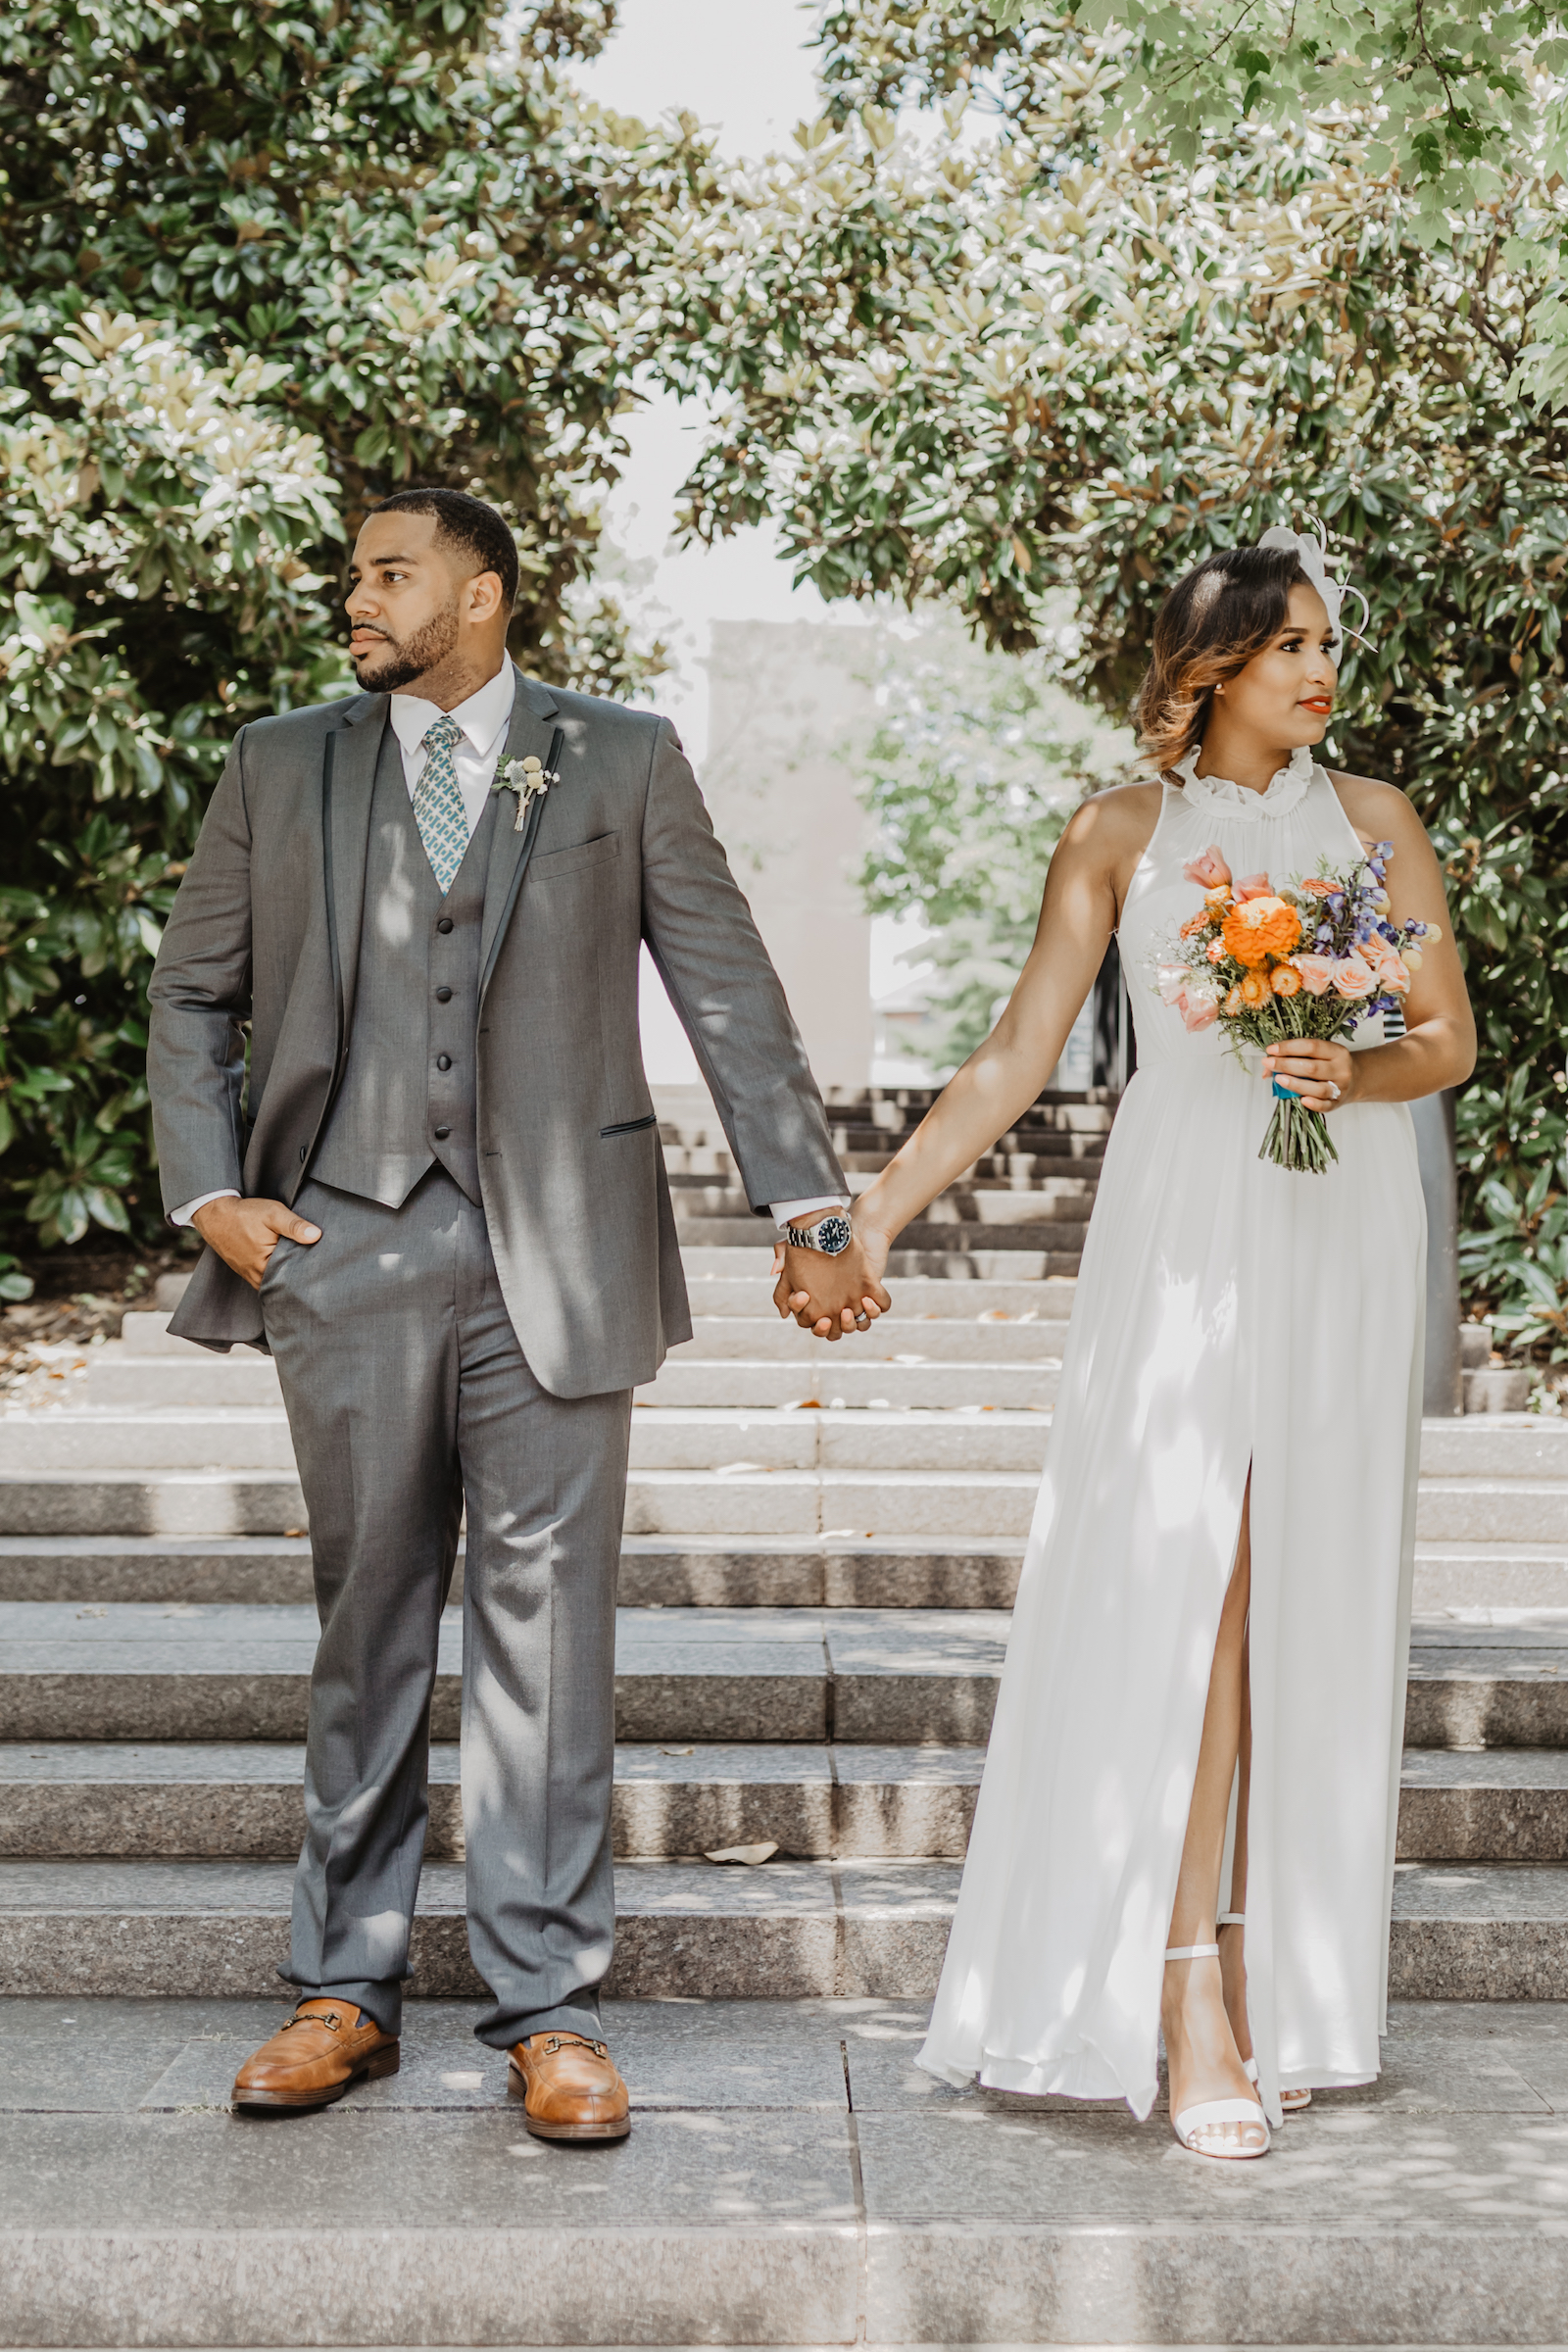 Outdoor wedding photos: Music City Merger wedding inspiration featured on Nashville Bride Guide